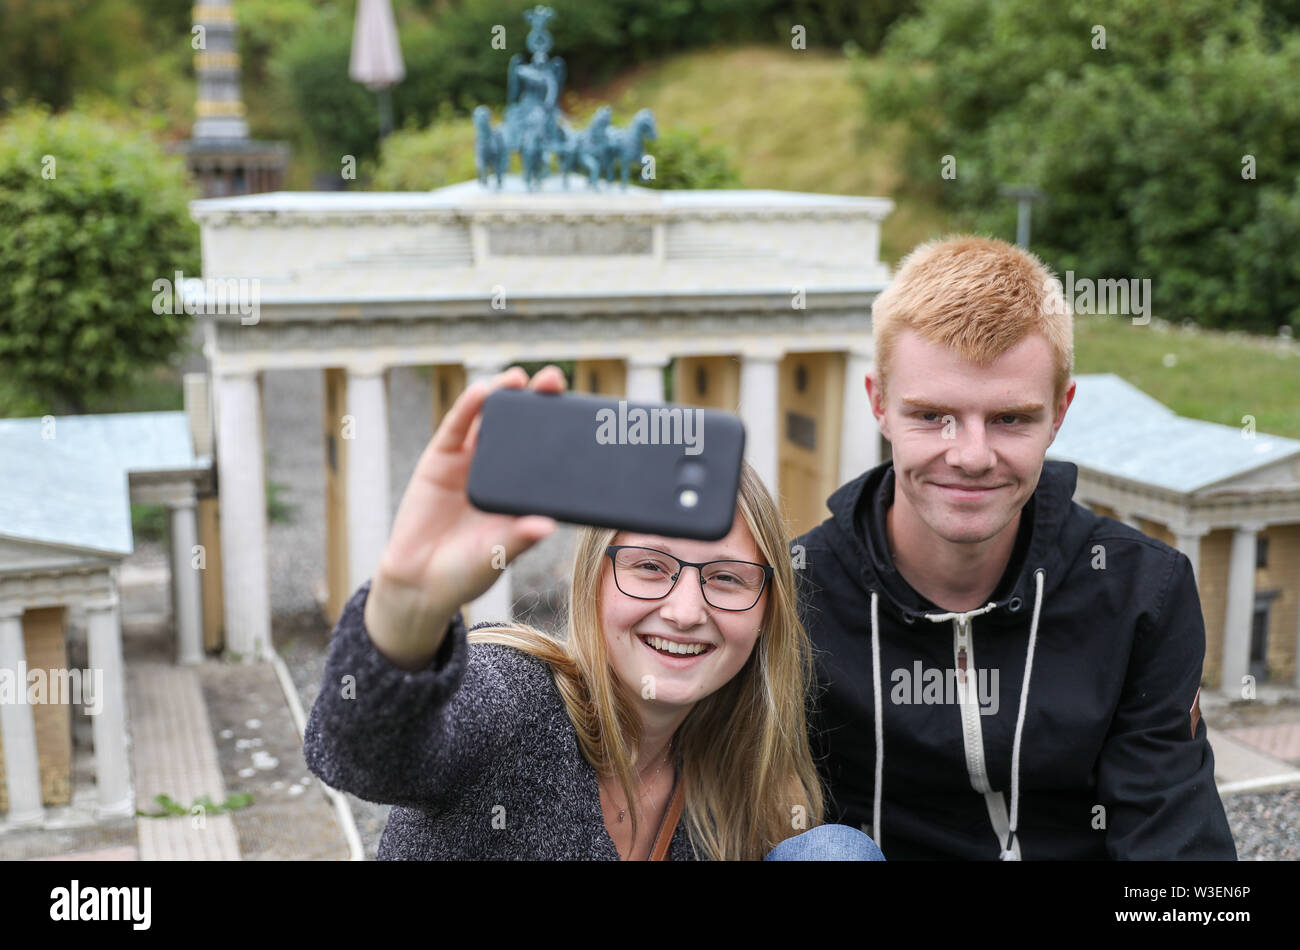 Lichtenstein, Germany. 15th July, 2019. Lena and Jannik make a selfie in front of the Brandenburg Gate in the Miniwelt Lichtenstein/Saxony. Visitors can visit Dresden's Frauenkirche, the Eiffel Tower and the Taj Mahal on foot. Opened on 15 July 1999, the miniature park is now 20 years old. In the meantime, the initial 60 buildings have grown to more than 100. A good 1.9 million people have already visited the miniworld. Credit: Jan Woitas/dpa-Zentralbild/ZB/dpa/Alamy Live News - Stock Image